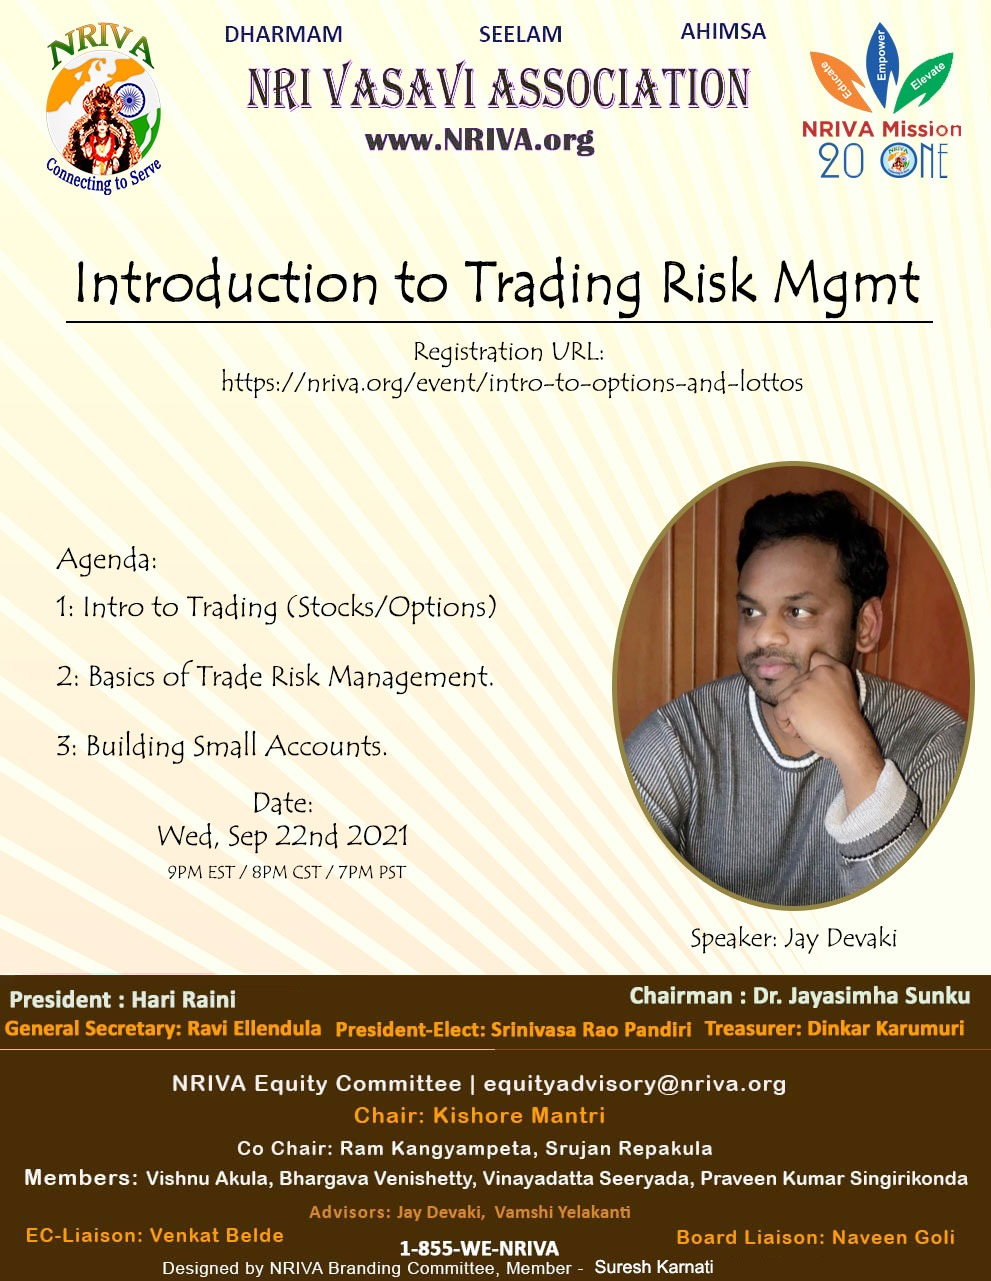 Intro to Trading and Risk Management